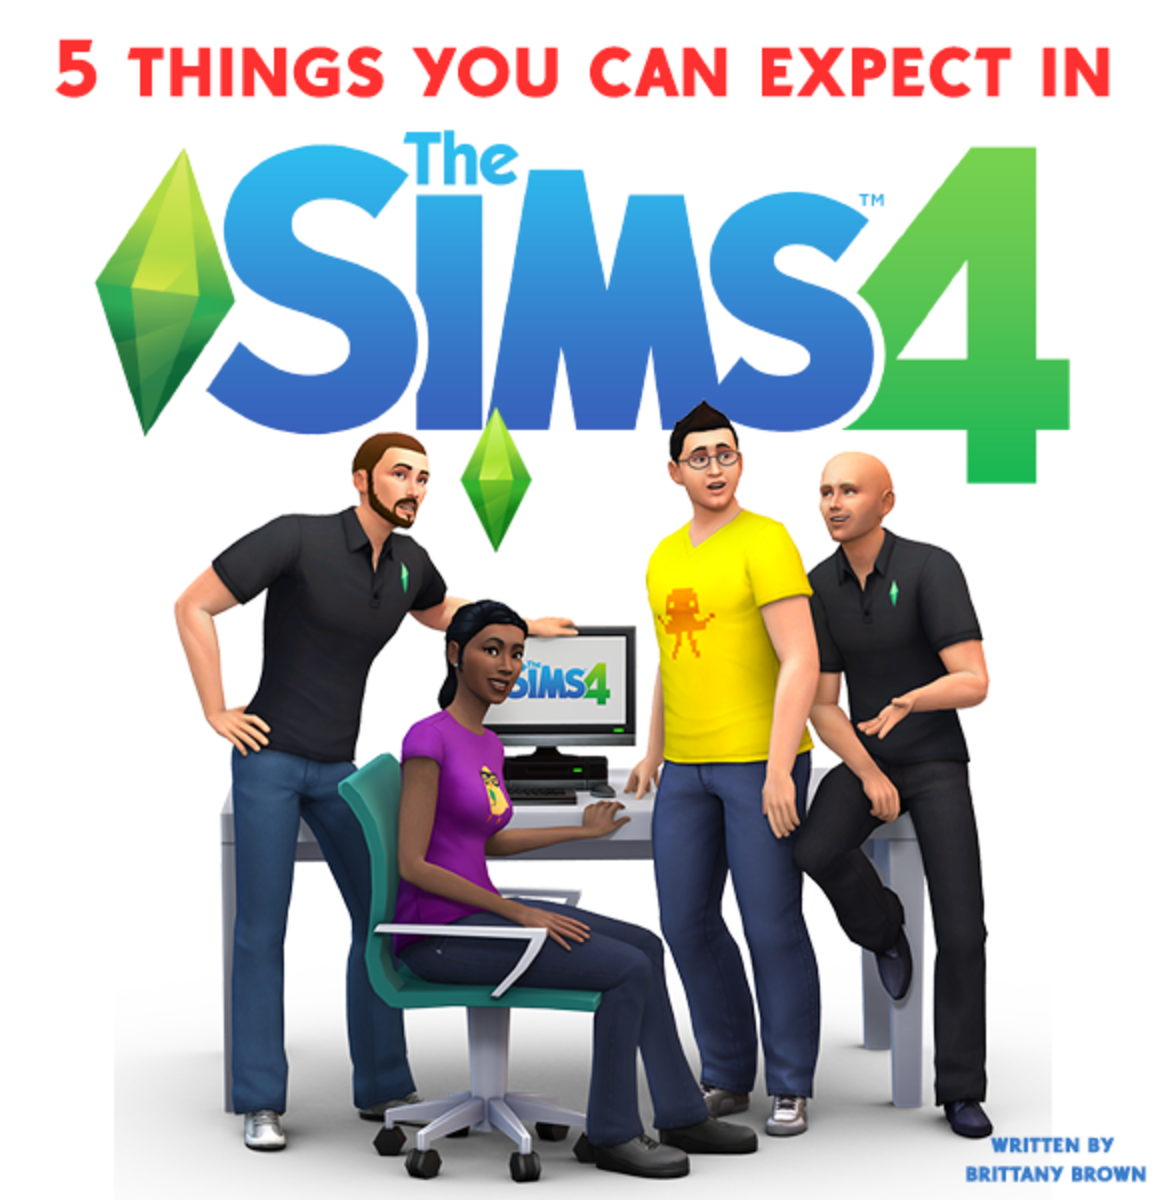 5 Things You Can Expect in